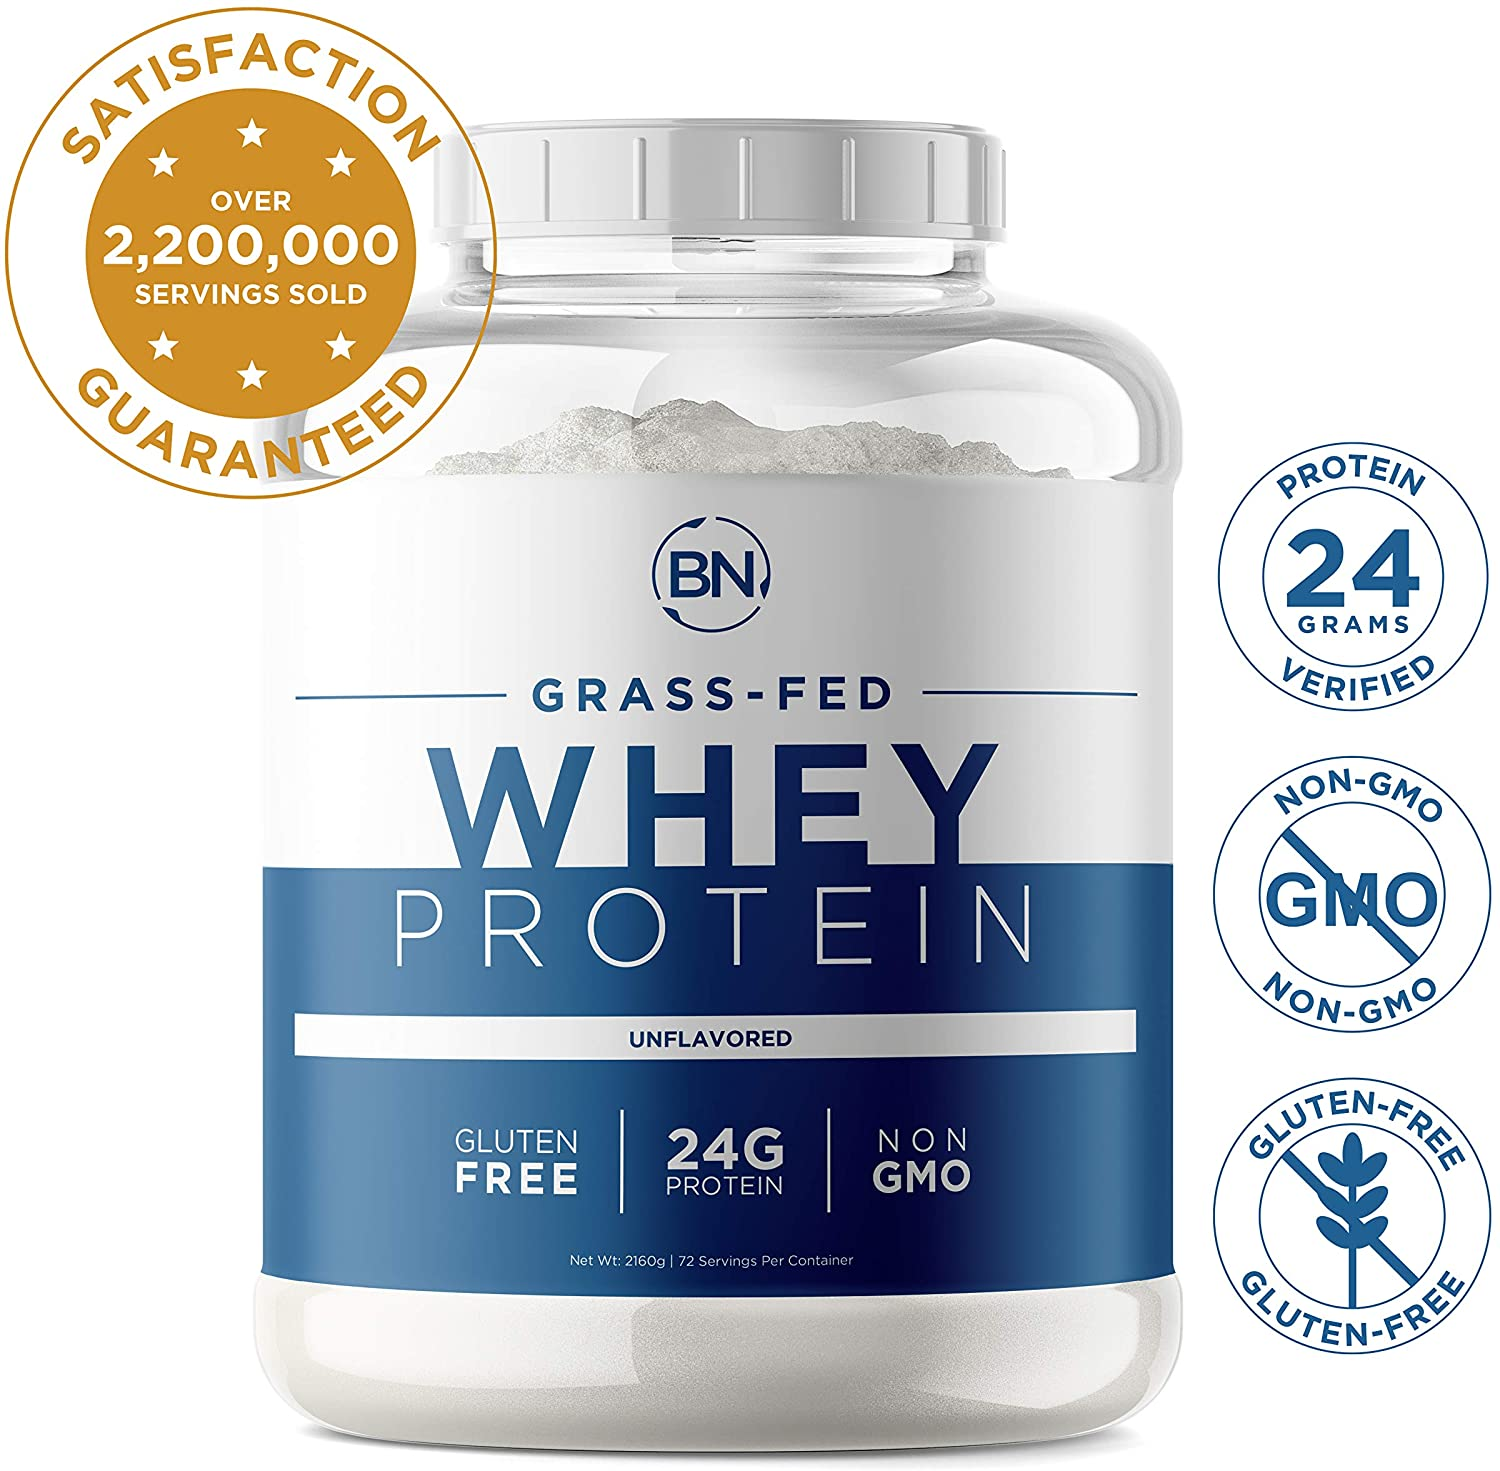 Grass-Fed Whey Protein Powder